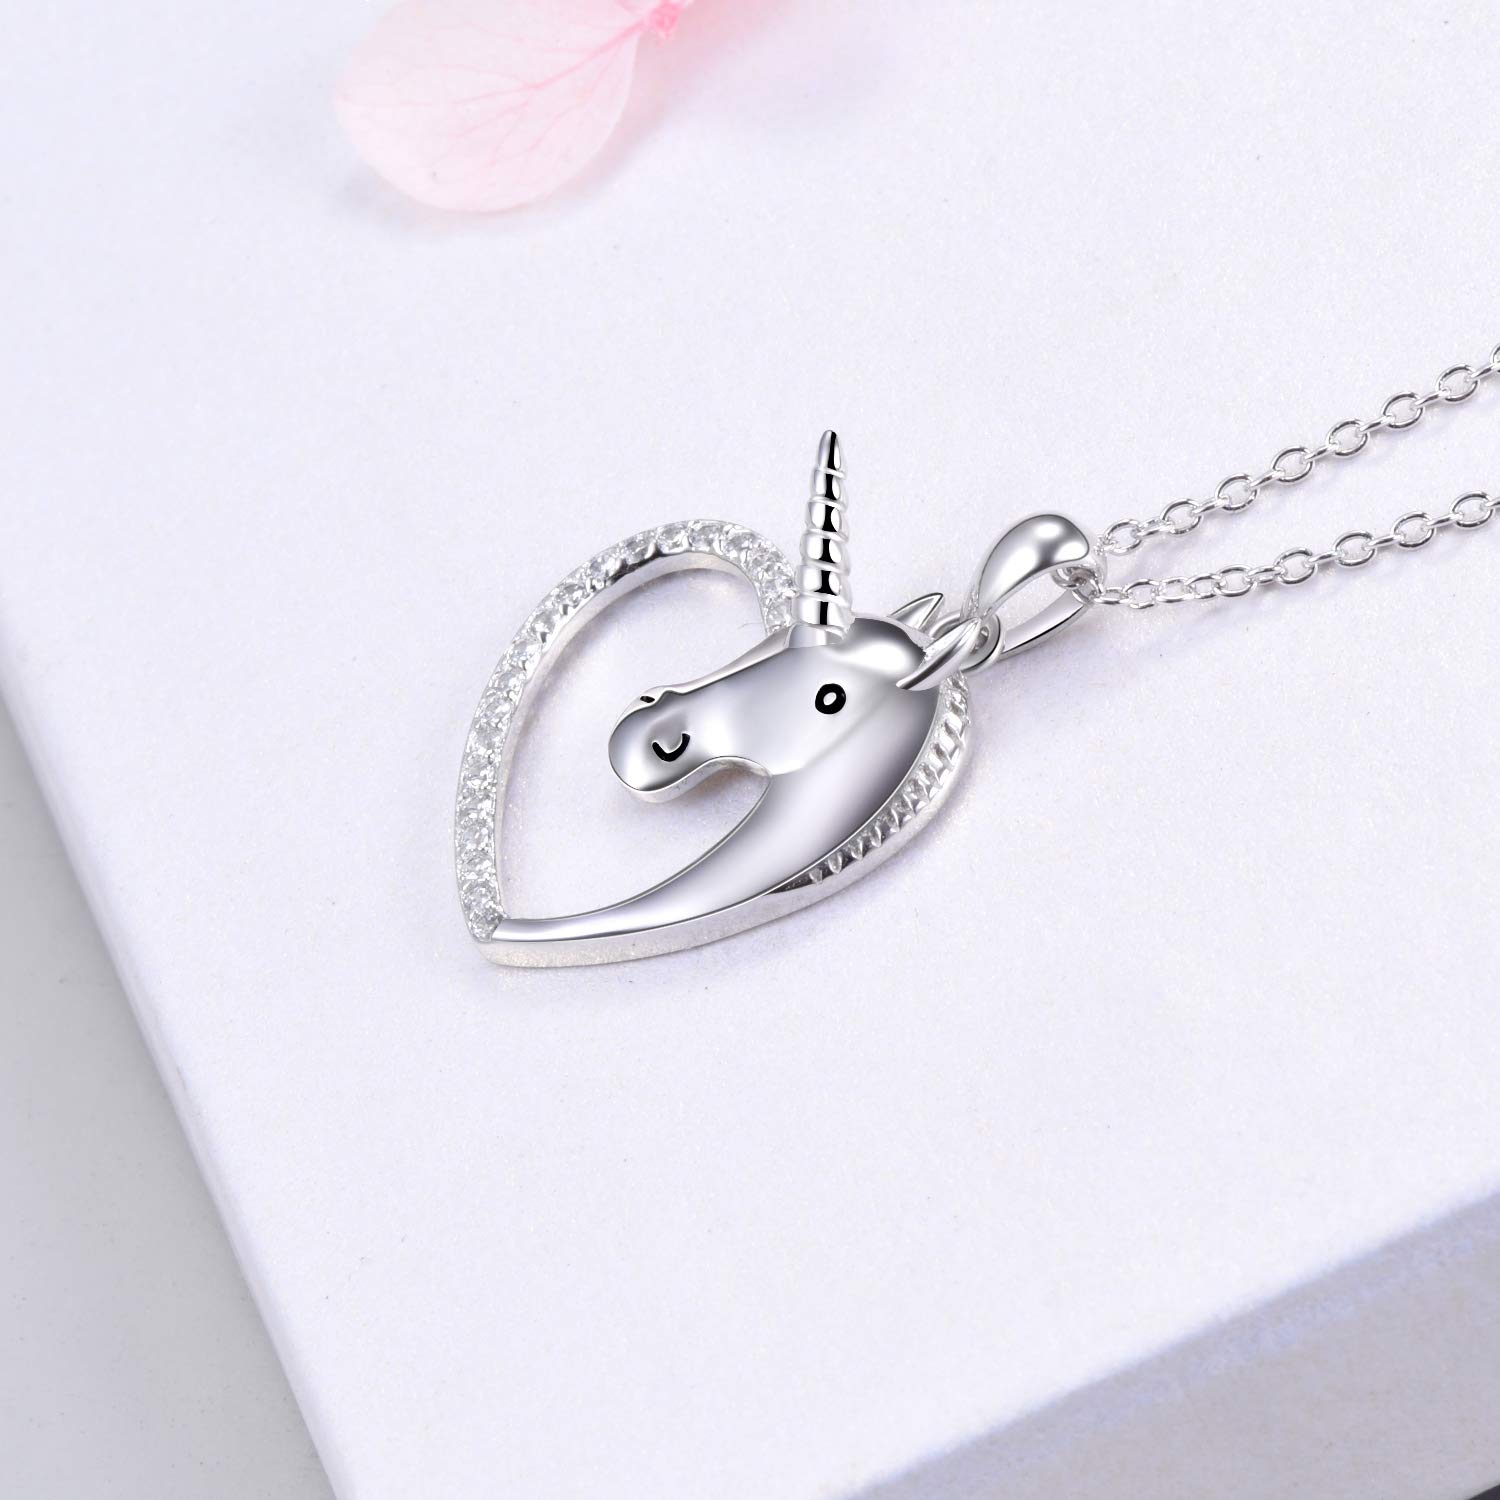 925-Sterling-Silver-Unicorn-Necklace-Pendant-locket-chain-Cute-Charm-Unicorn-Gifts-for-Niece-Little-Girls-Kids-and-Women-Unicorns-Fashion-Heart-Shaped-Ladies-Jewellery-Necklaces-Comes-In-Gift-Box